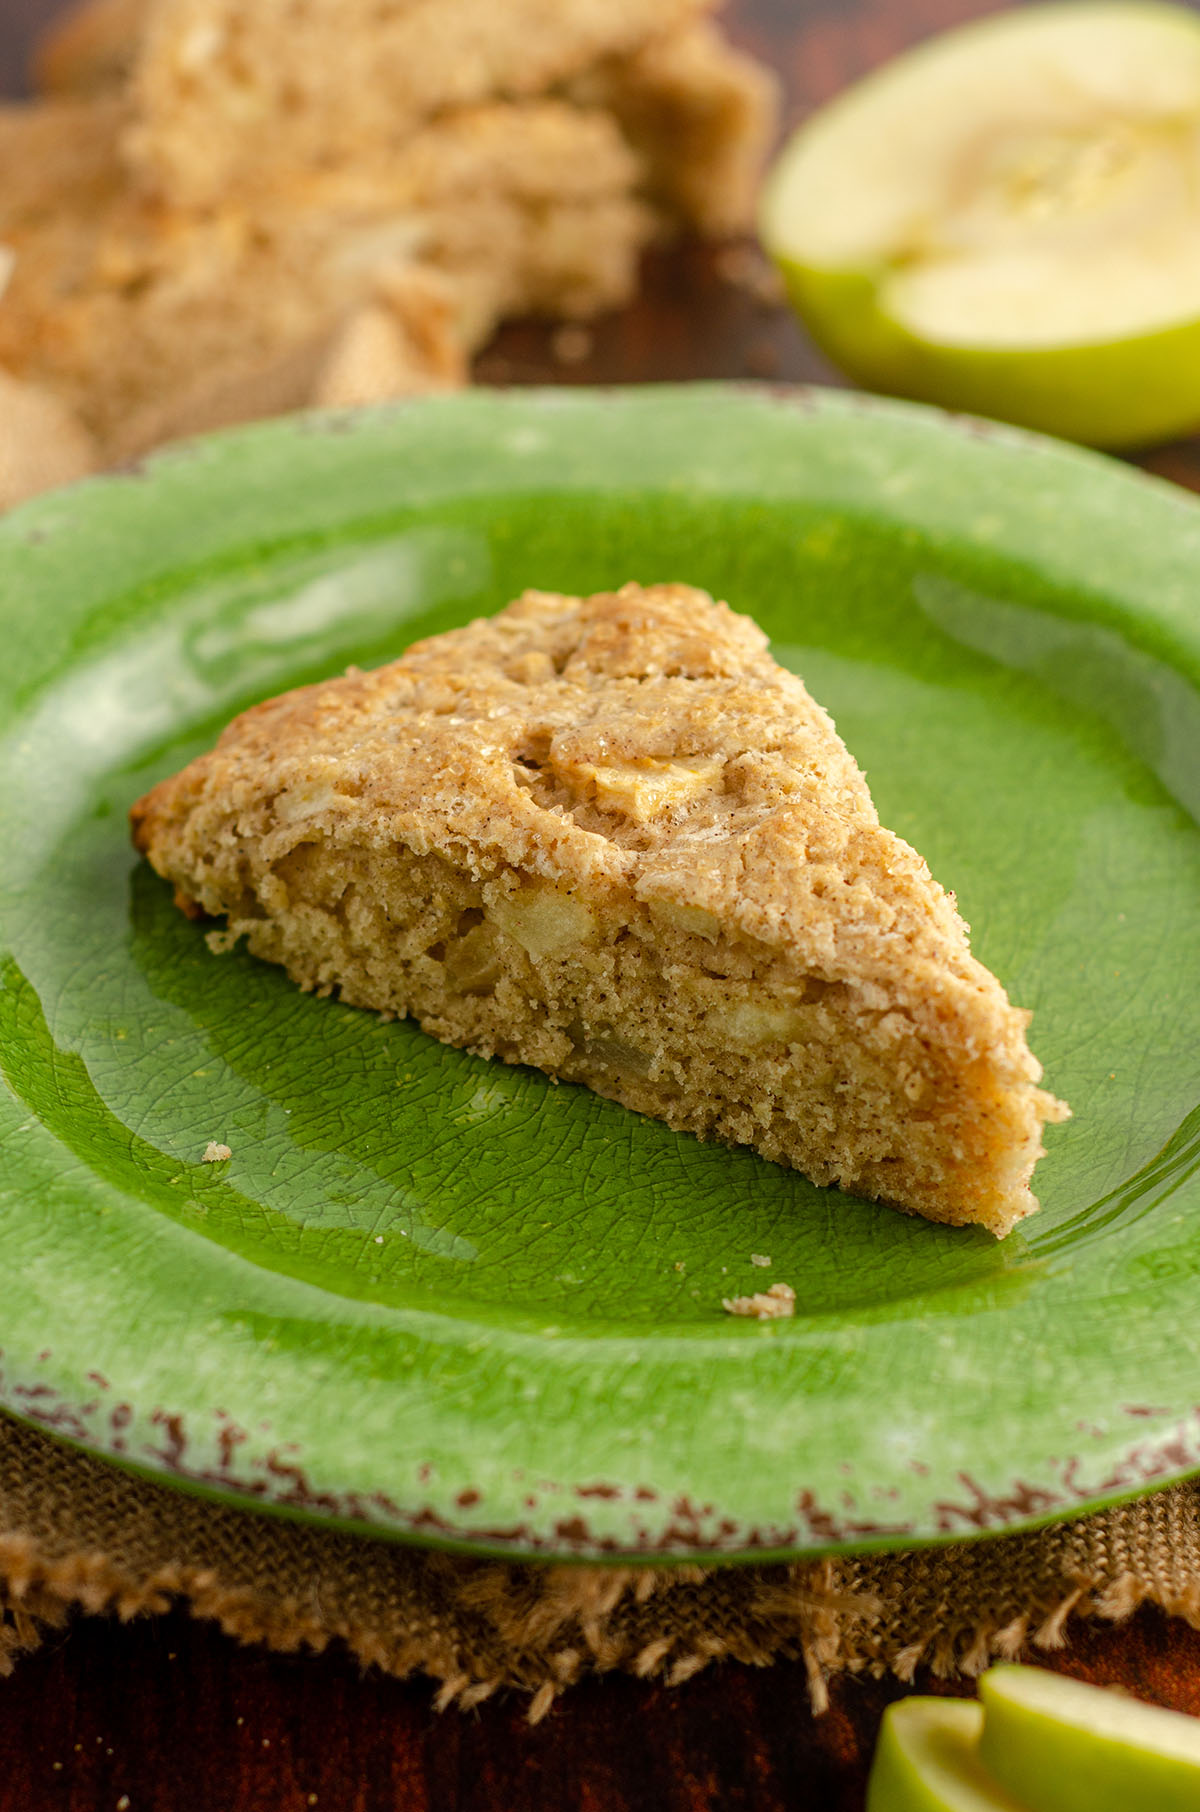 apple scone on a green plate